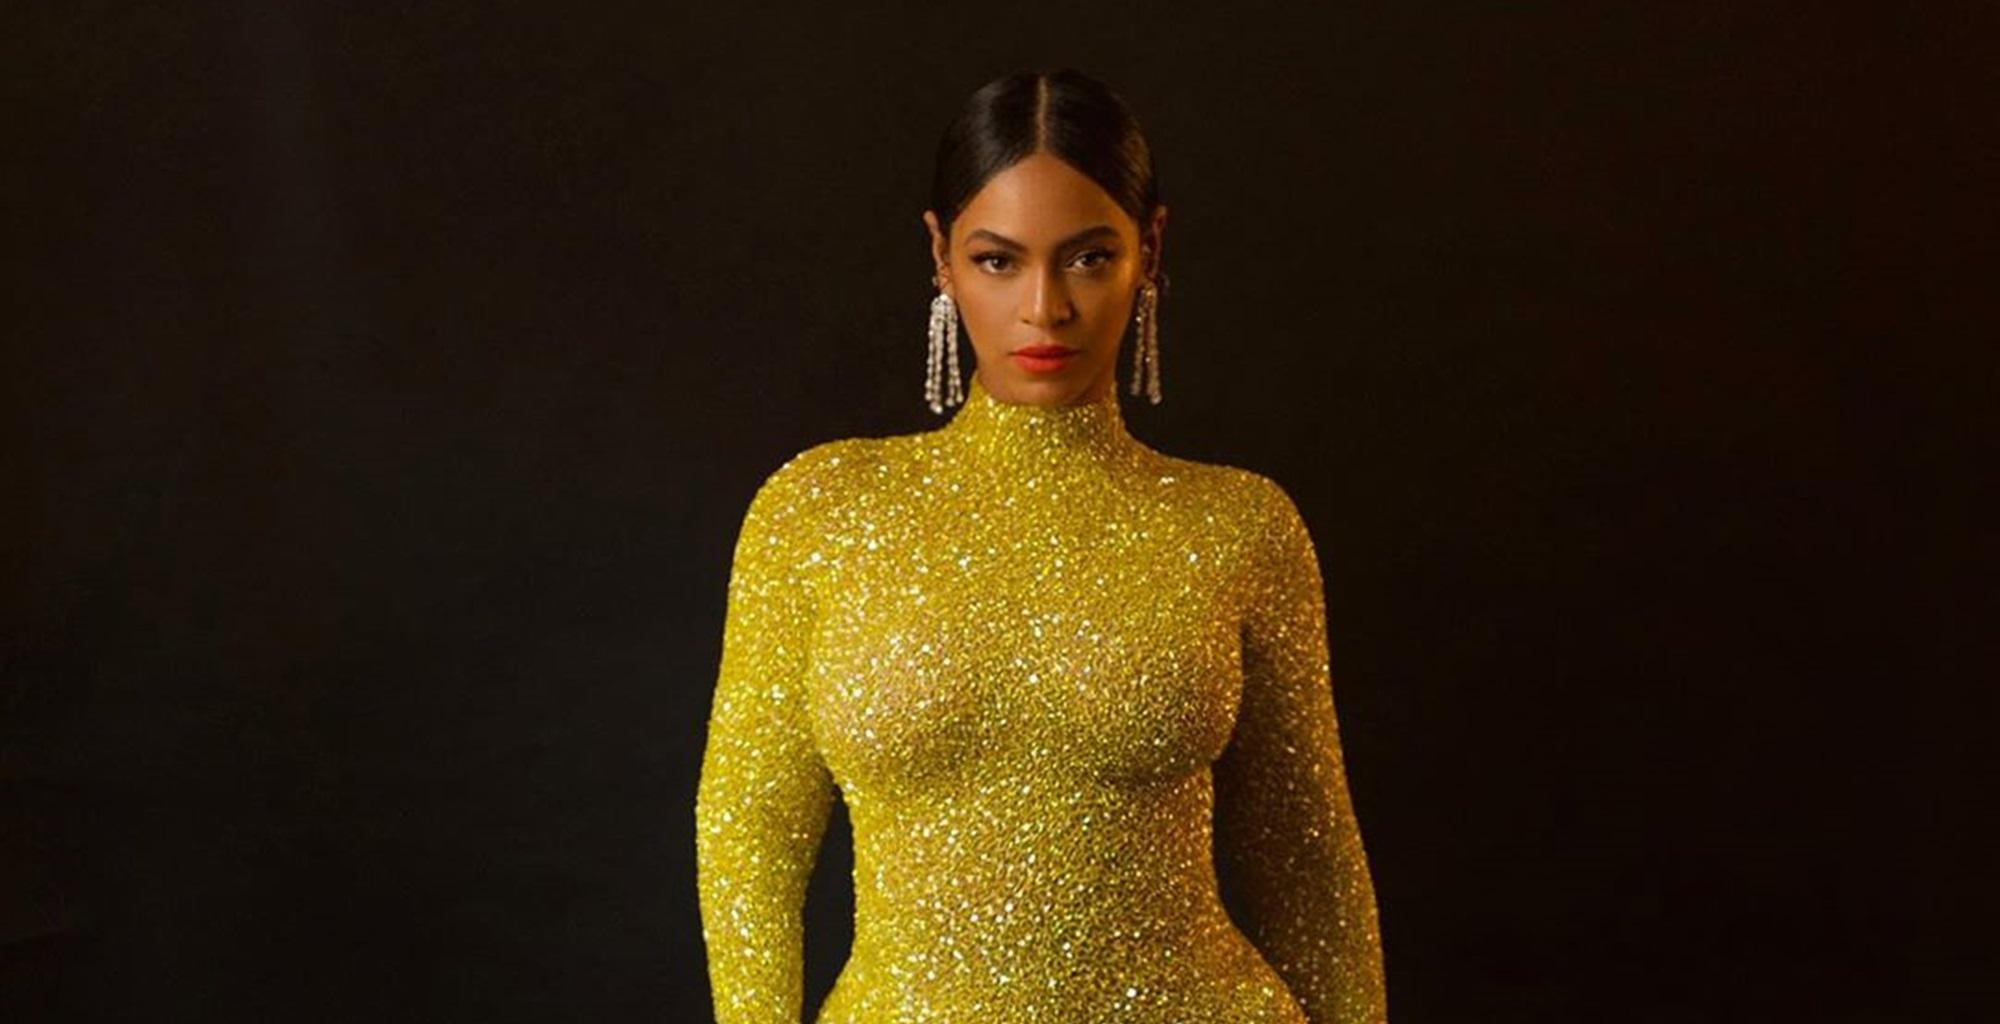 Beyonce's Face Looks Very Different In New Photos At Tyler Perry's Event, And It Has Her Fans Saying She is Pregnant With Baby Number 4